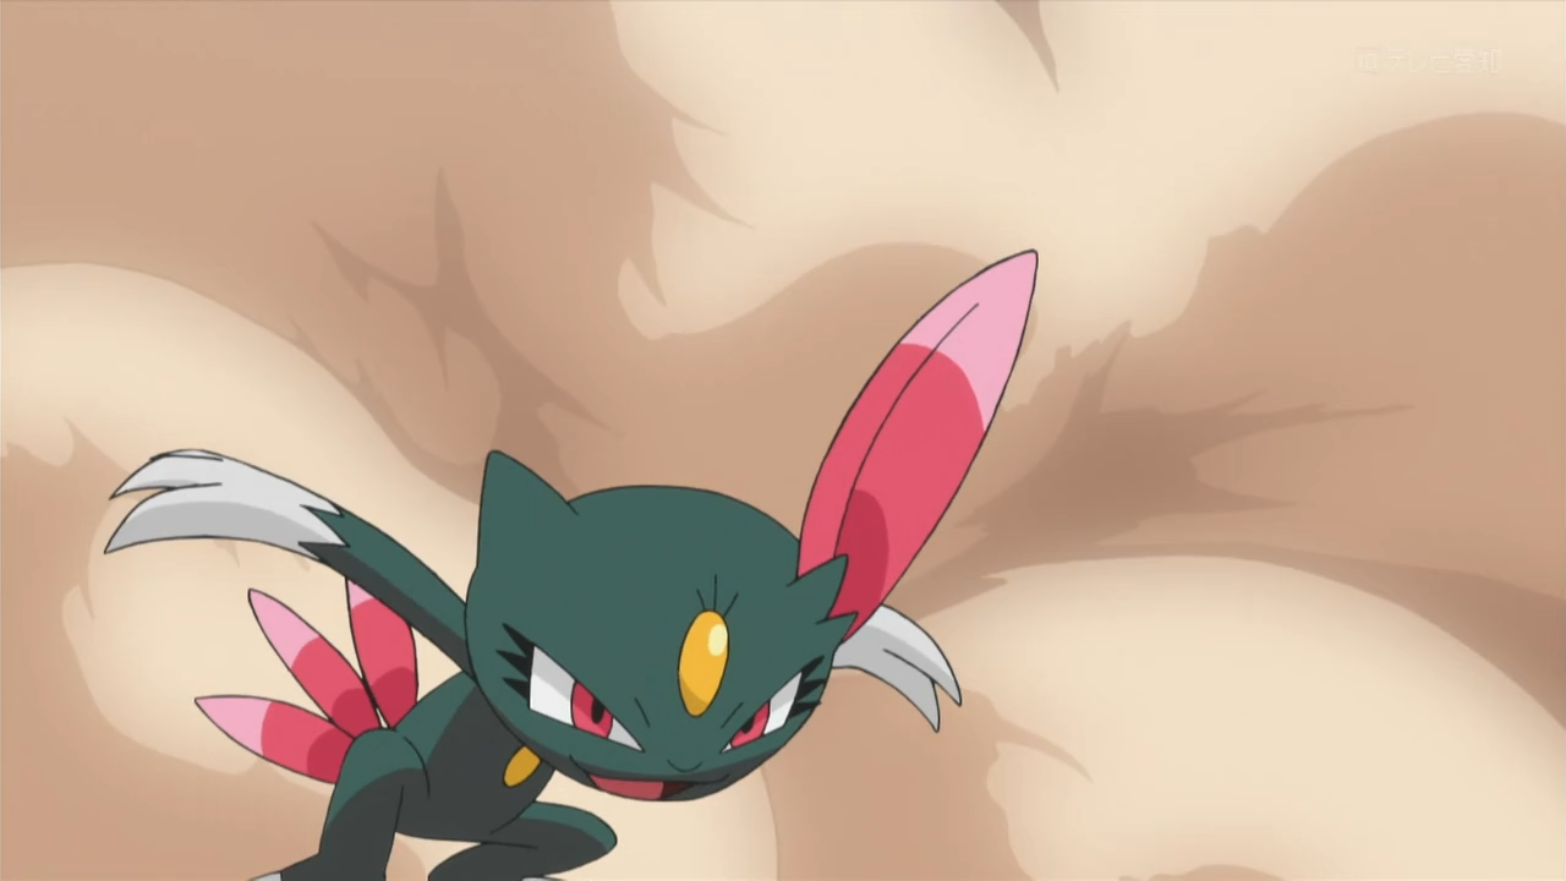 Team Flare's Sneasel